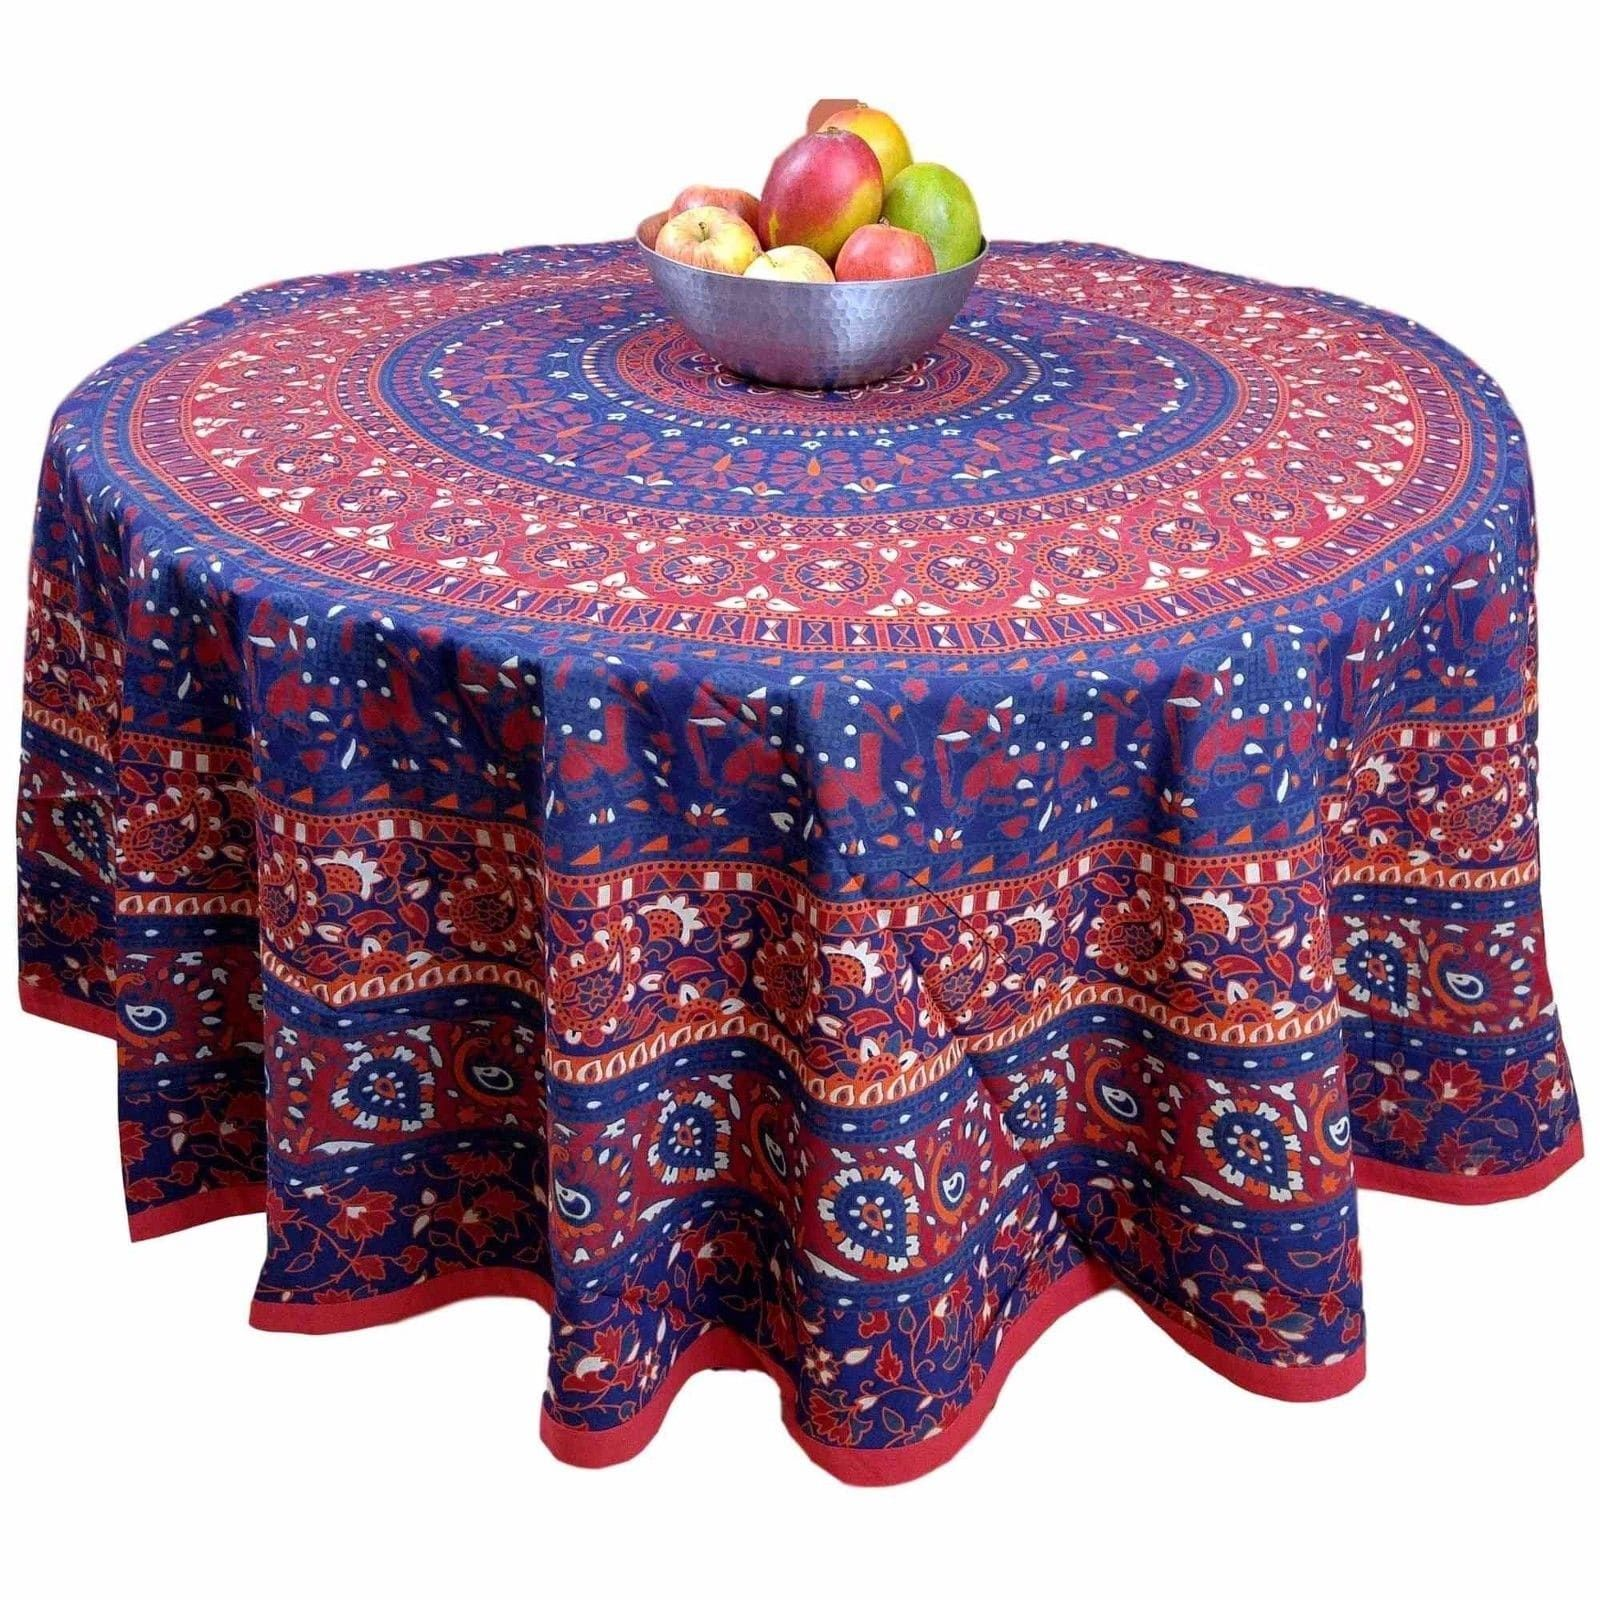 Handmade cotton elephant mandala floral round tablecloth